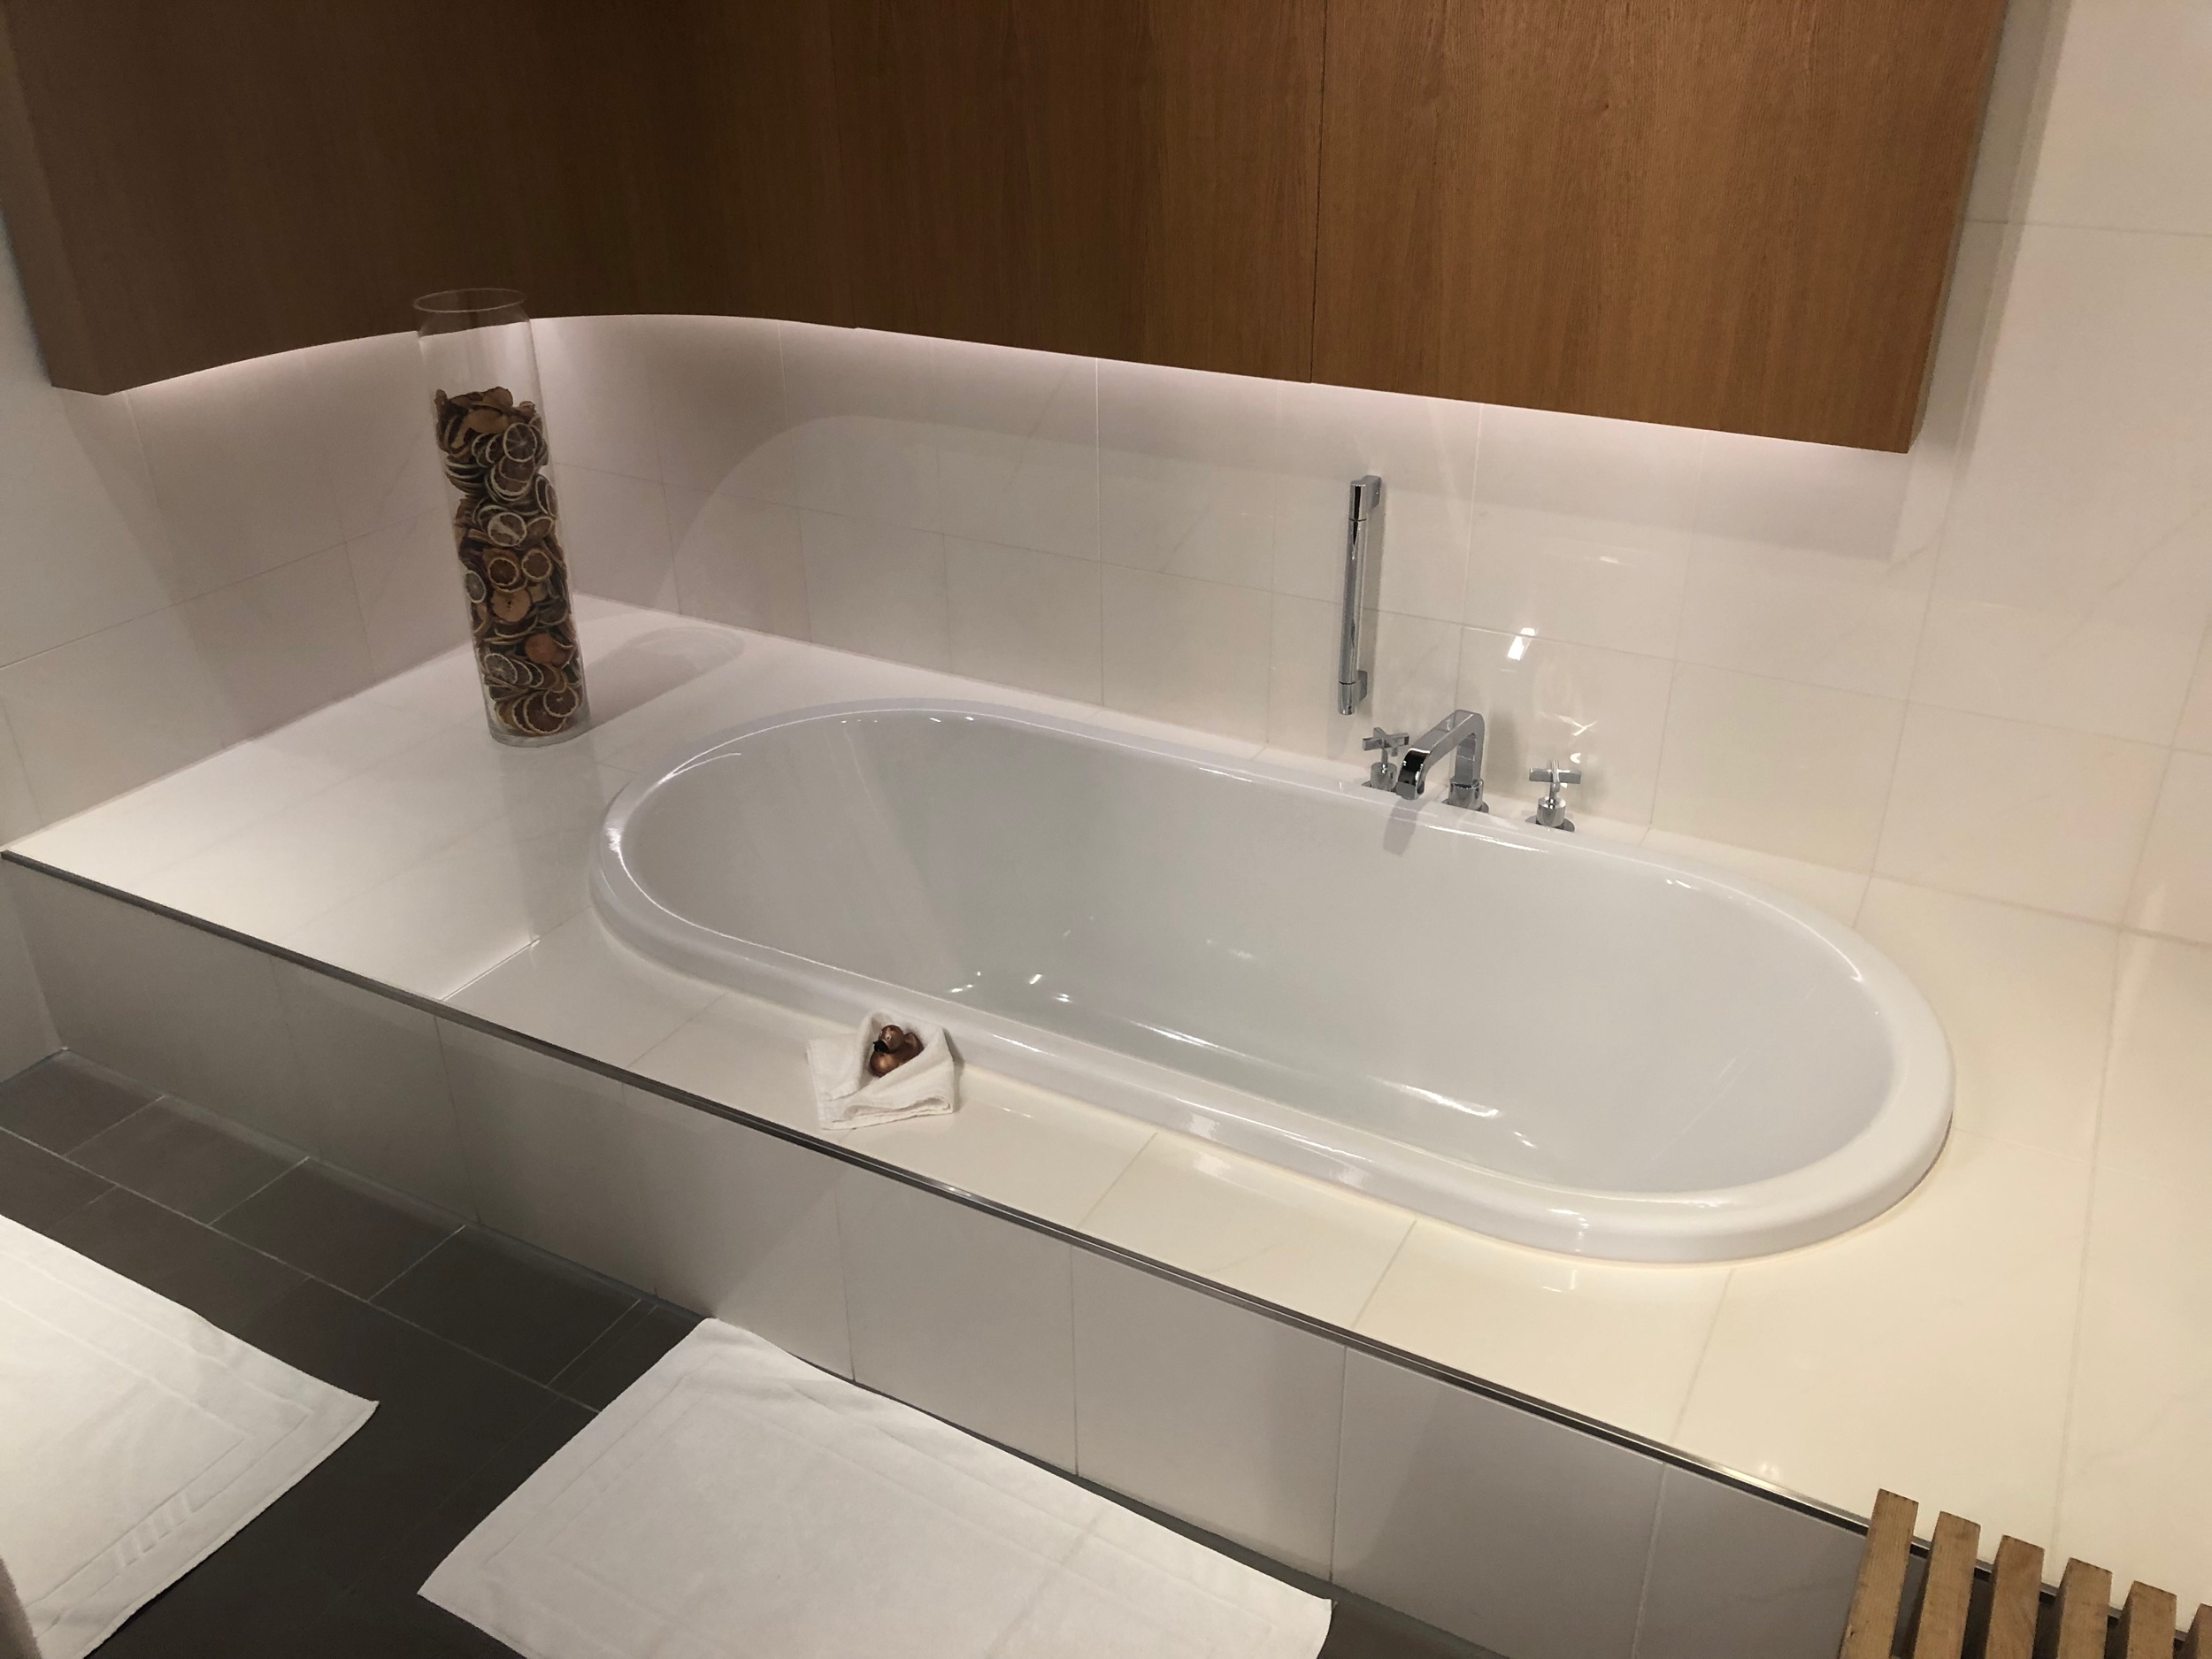 Lufthansa First Class Lounge Munich Bathtub